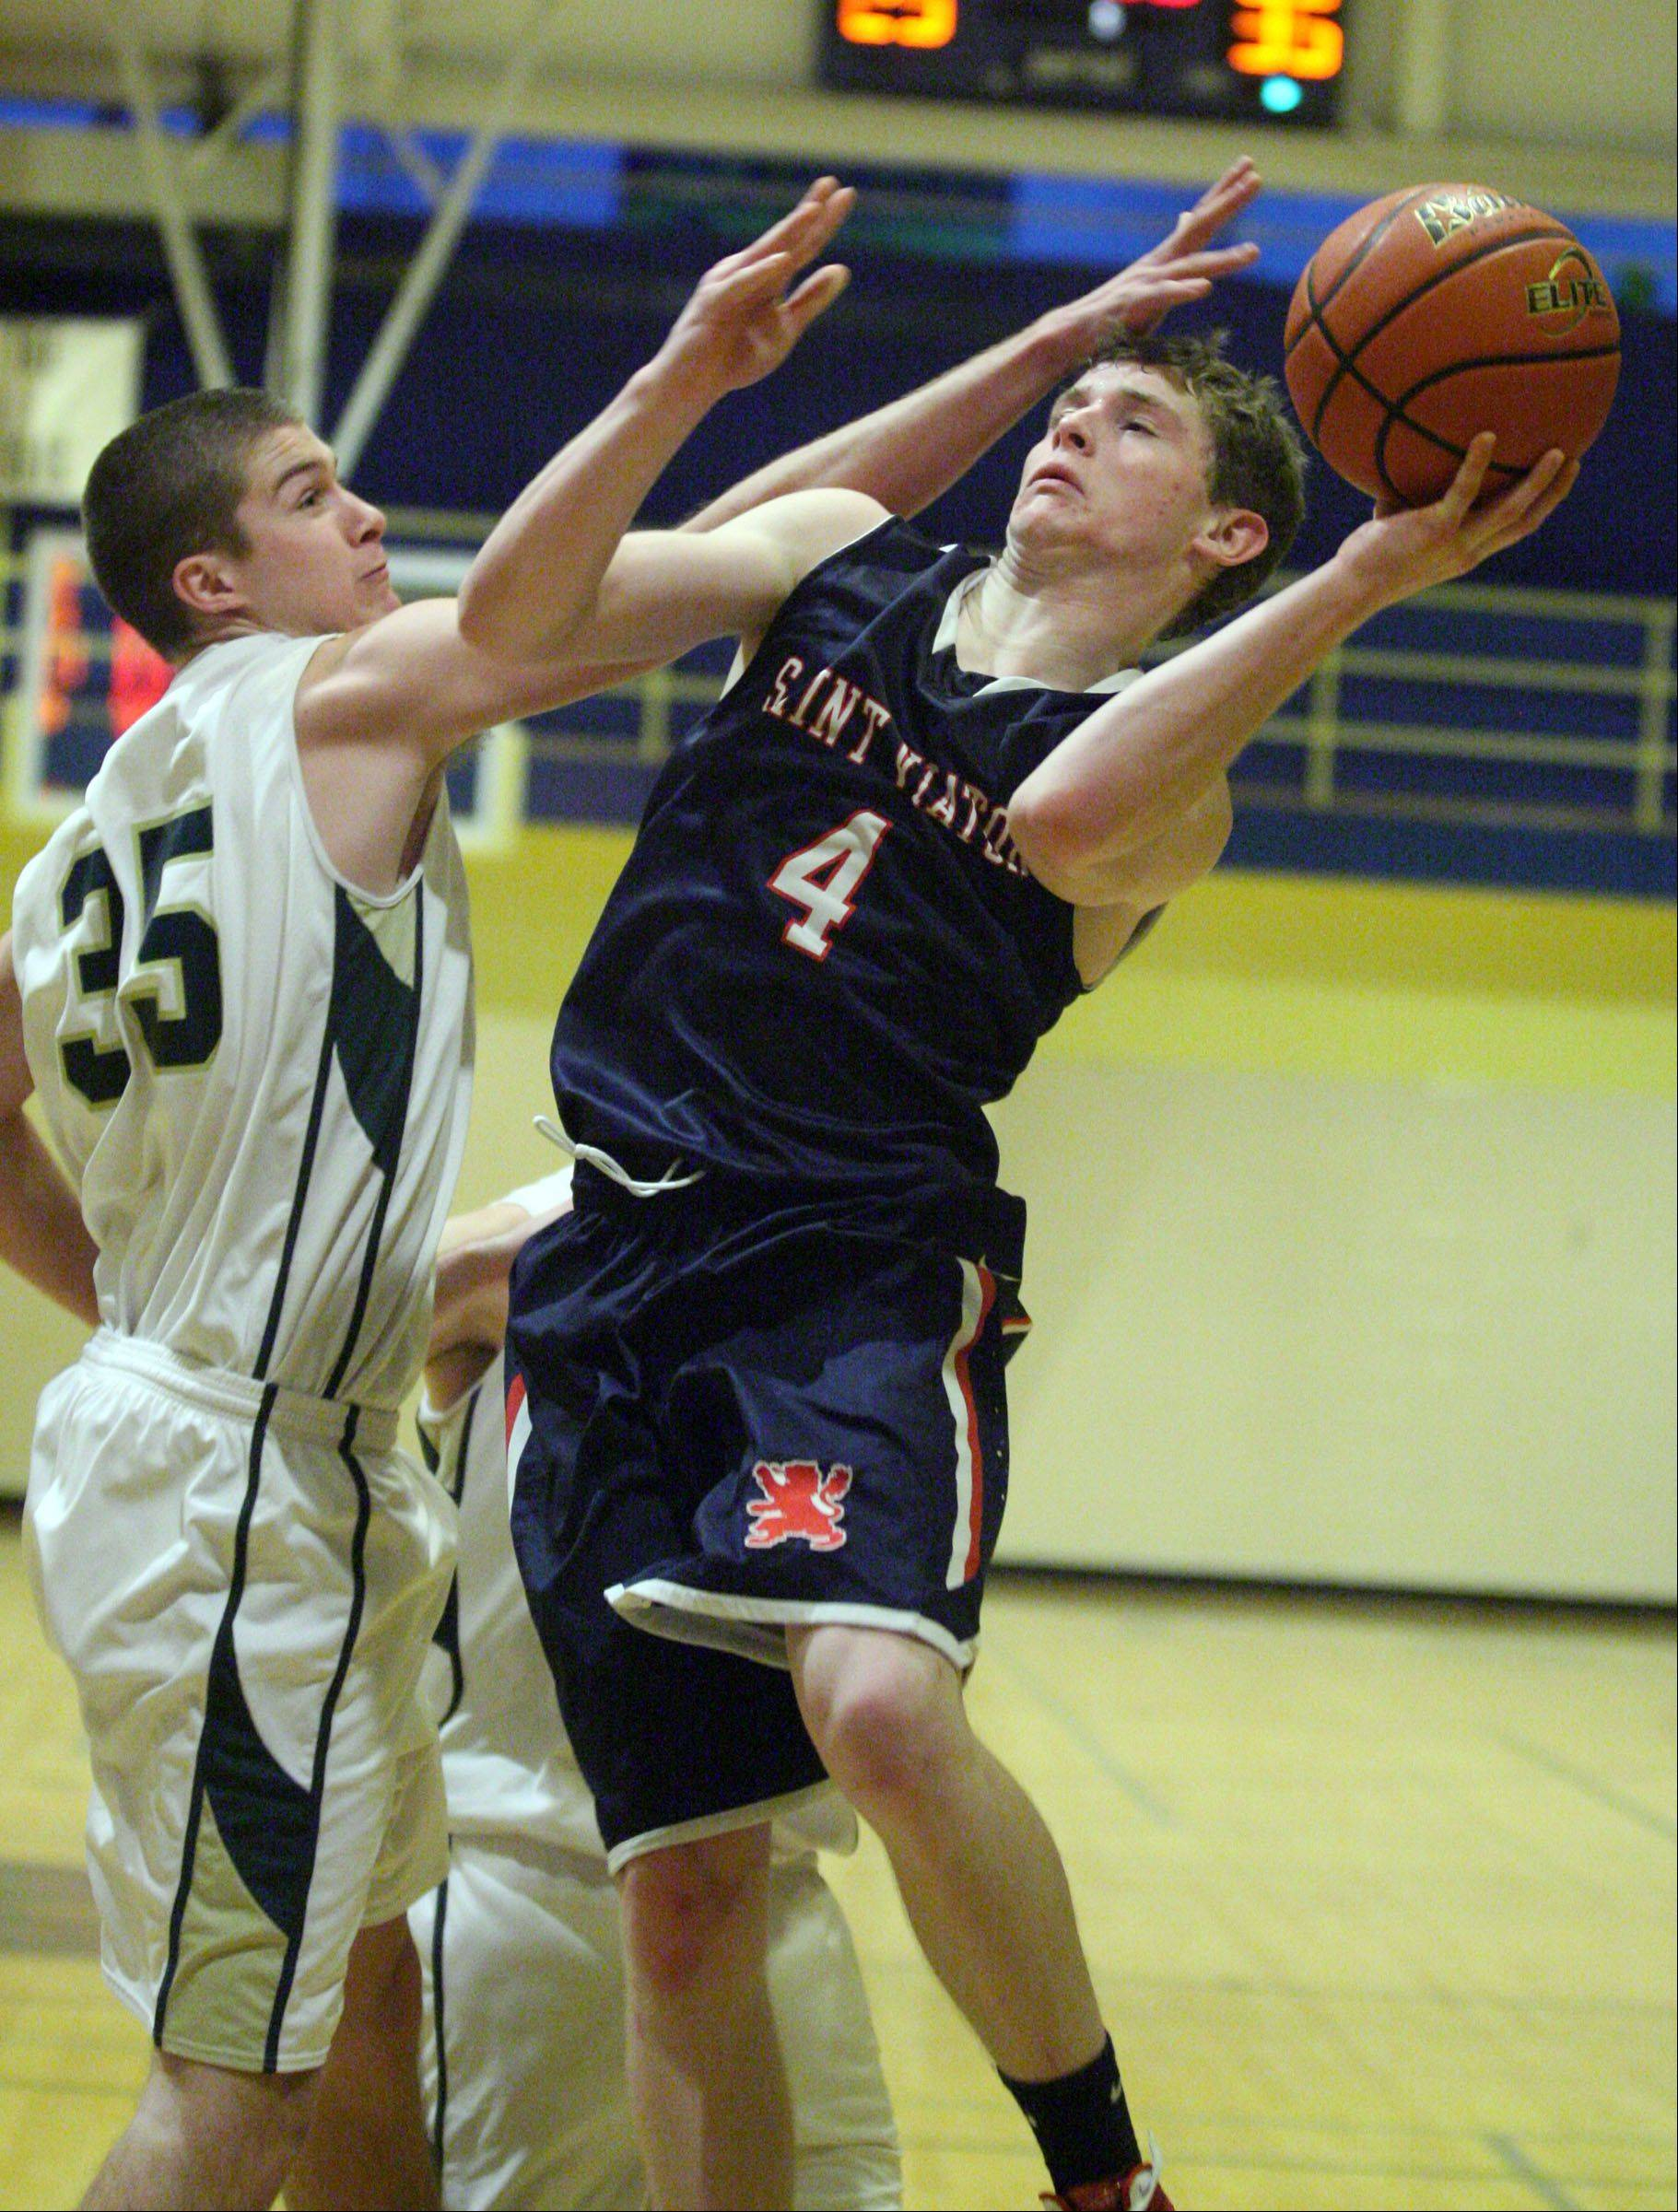 St. Viator's Kevin Hammarlund shoots against Fremd defender Tom Cordell in the 35th annual Wheeling Wildcat Hardwood Classic on Thursday.